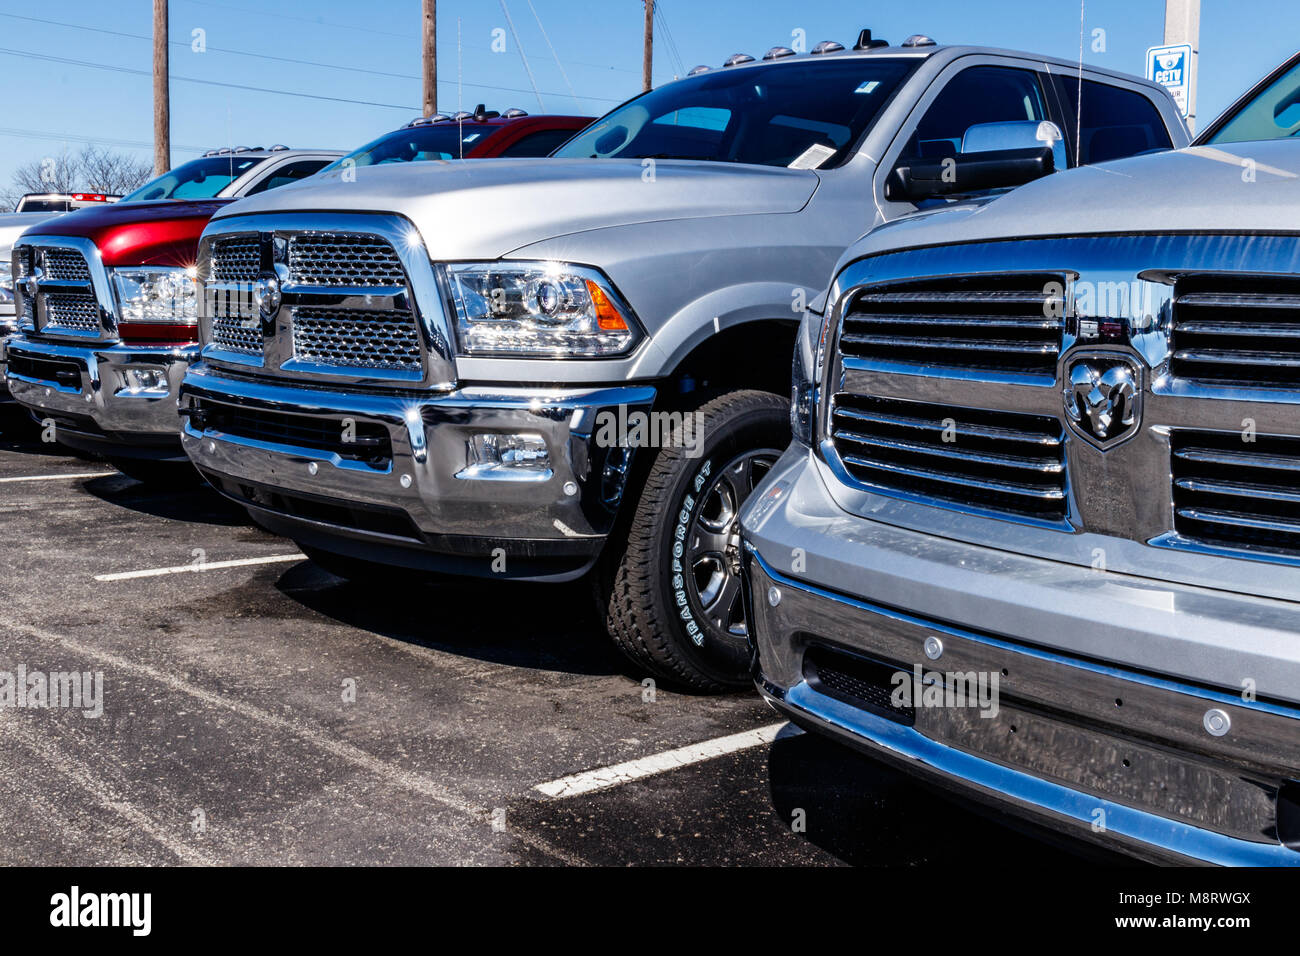 Noblesville - Circa March 2018: Ram Truck Dealership. Ram is a subsidiary of Fiat Chrysler Automobiles. FCA is the Stock Photo